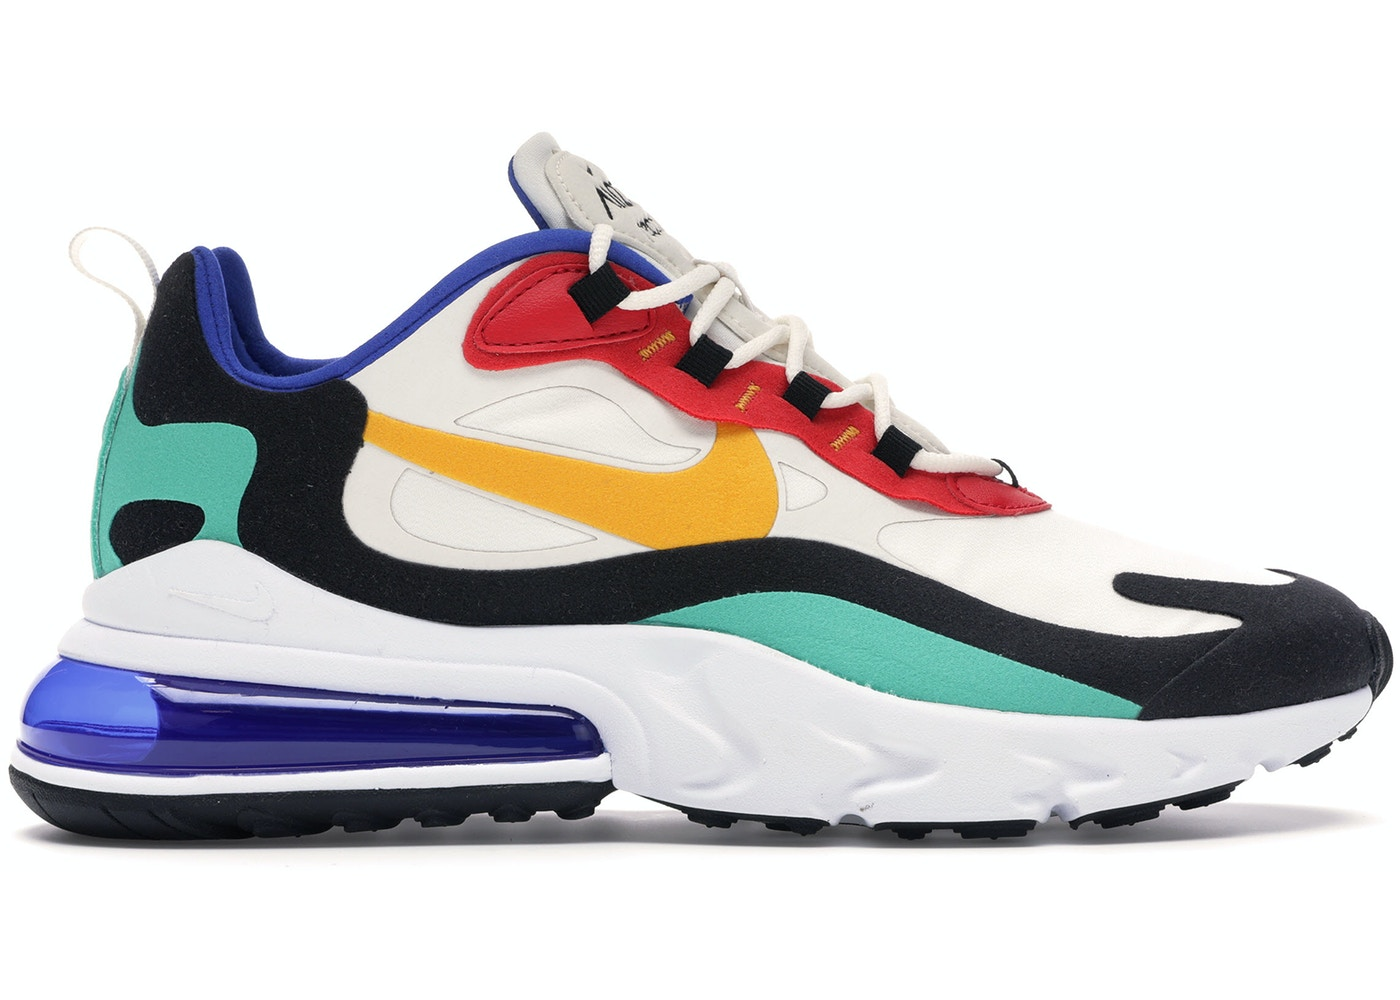 info for 6a978 585f0 Air Max 270 React Bauhaus